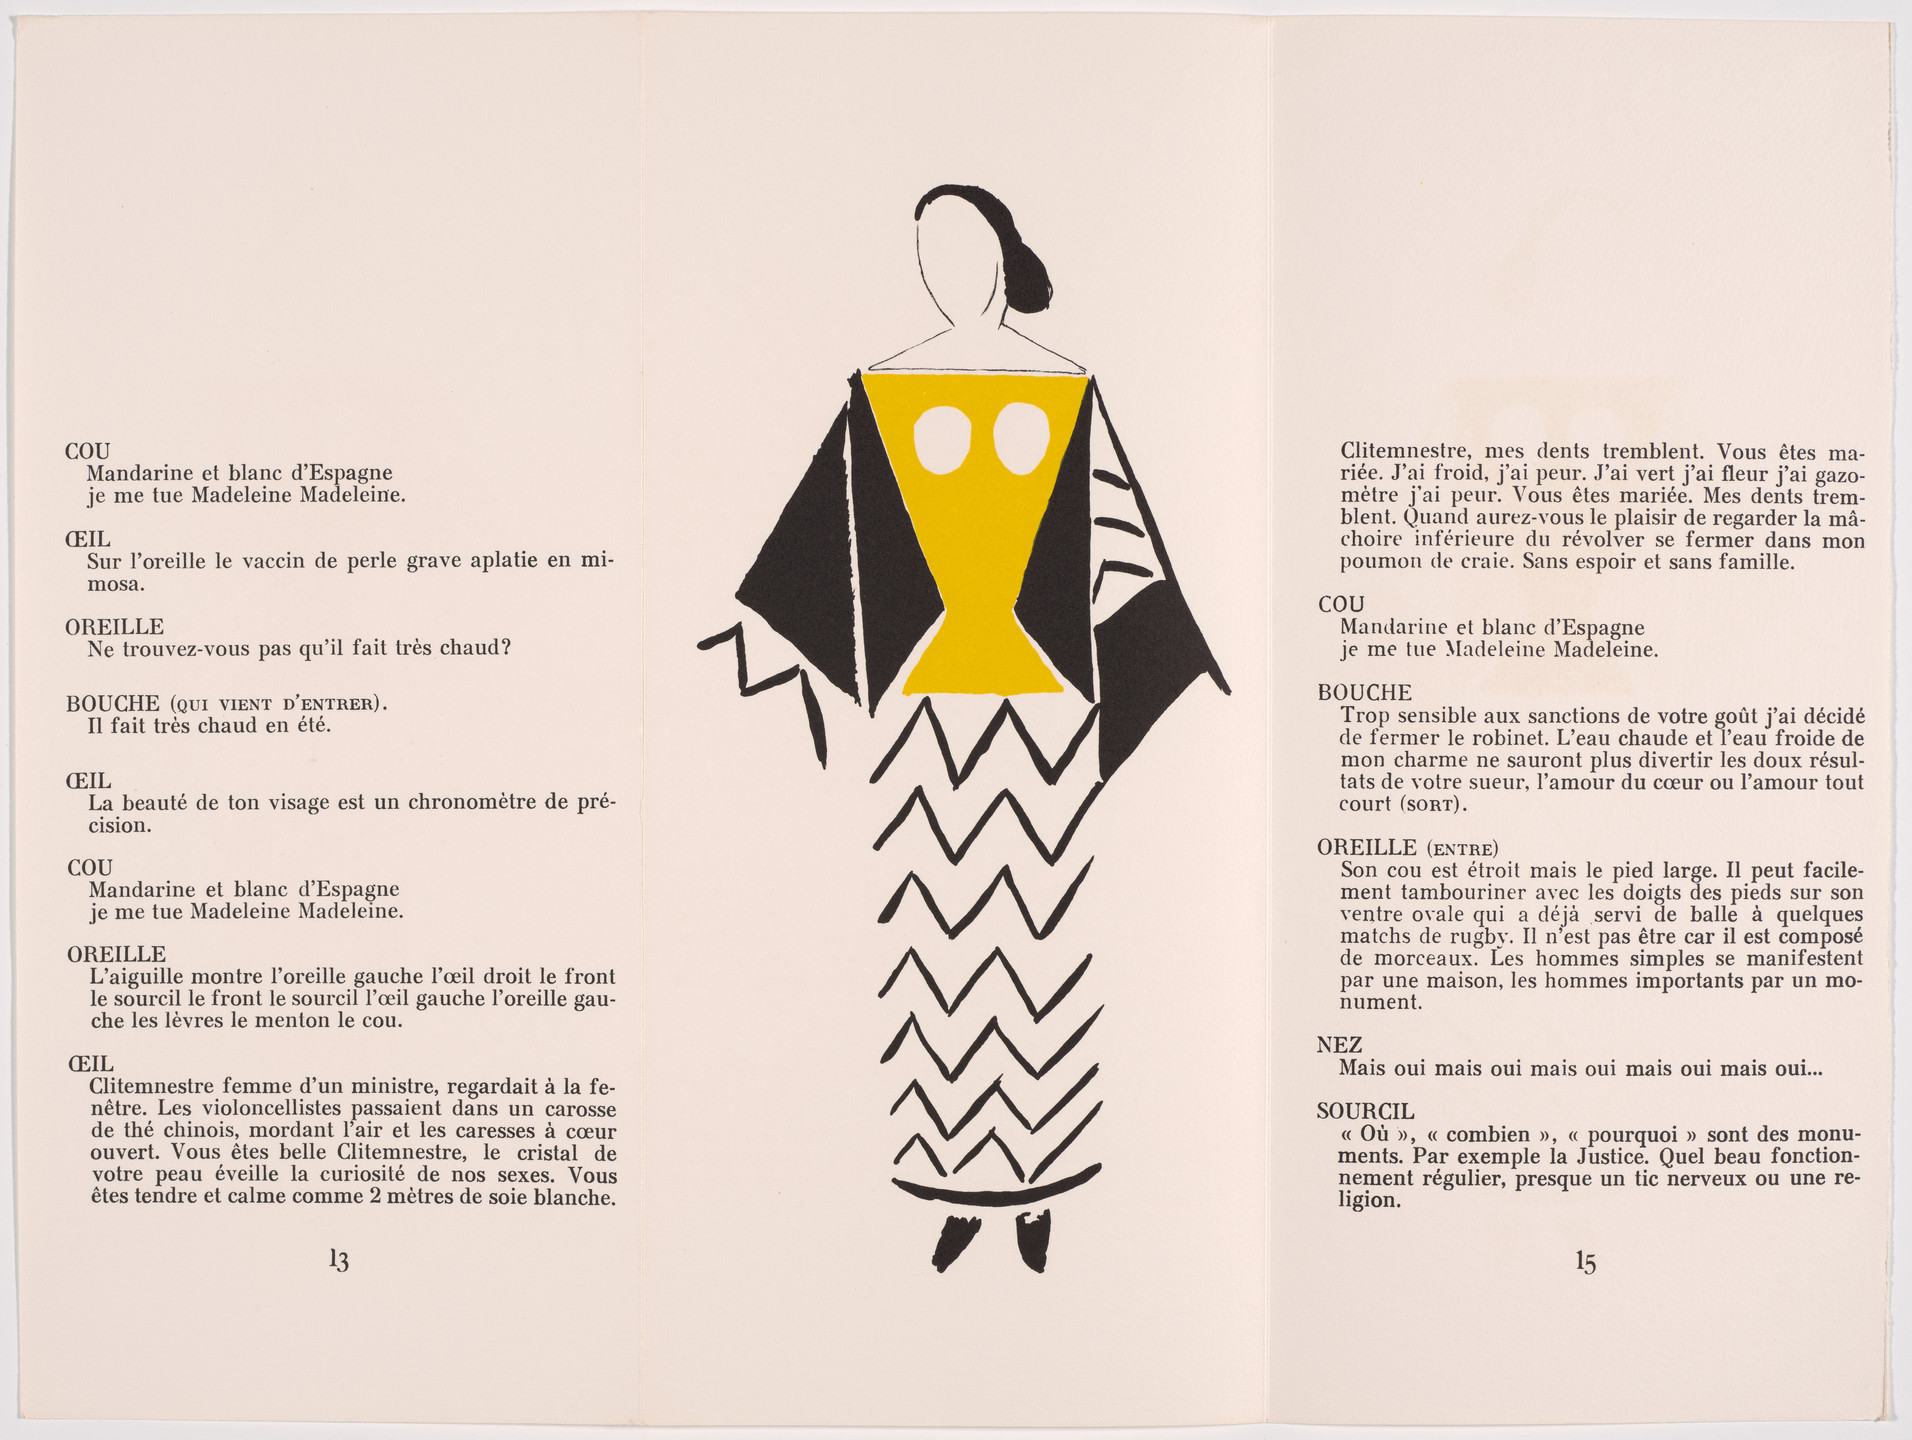 Sonia Delaunay-Terk. Plate (page 14) from Le Coeur à Gaz (The Gas Heart). 1923, published 1977